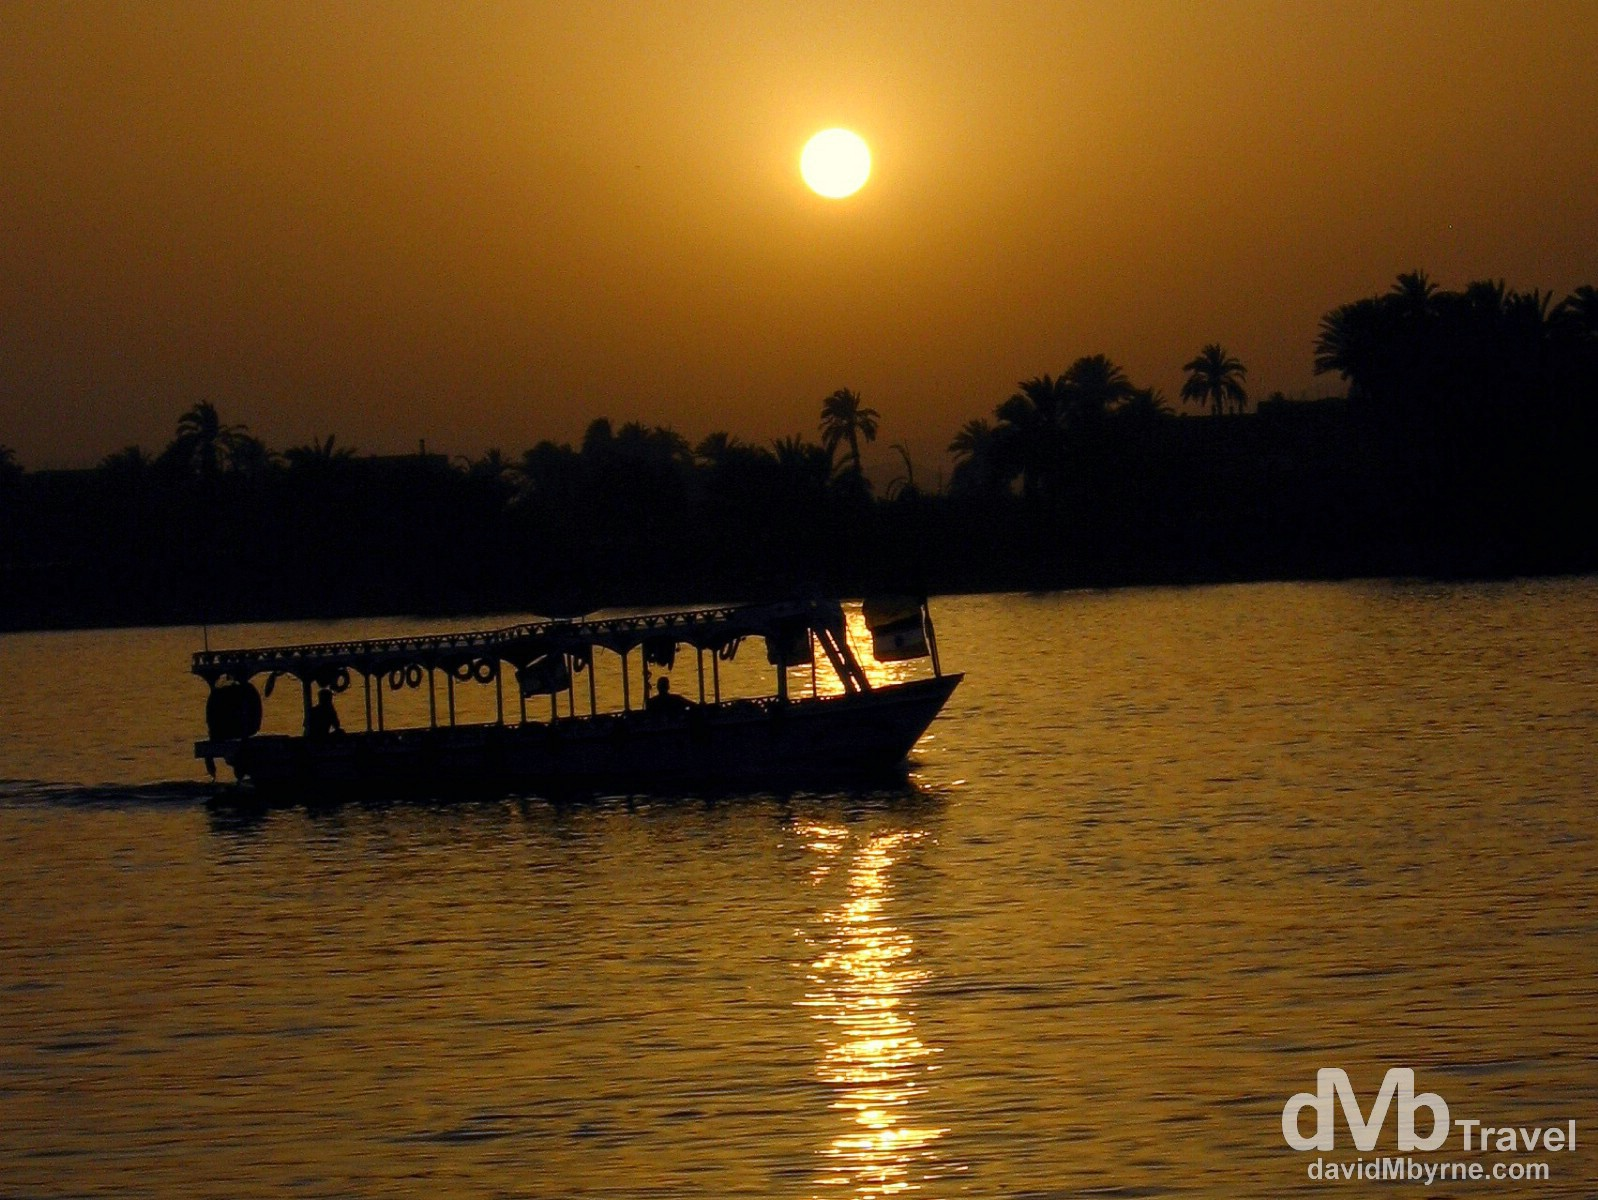 Sunset on the Nile River in Luxor, Egypt. April 12, 2008.